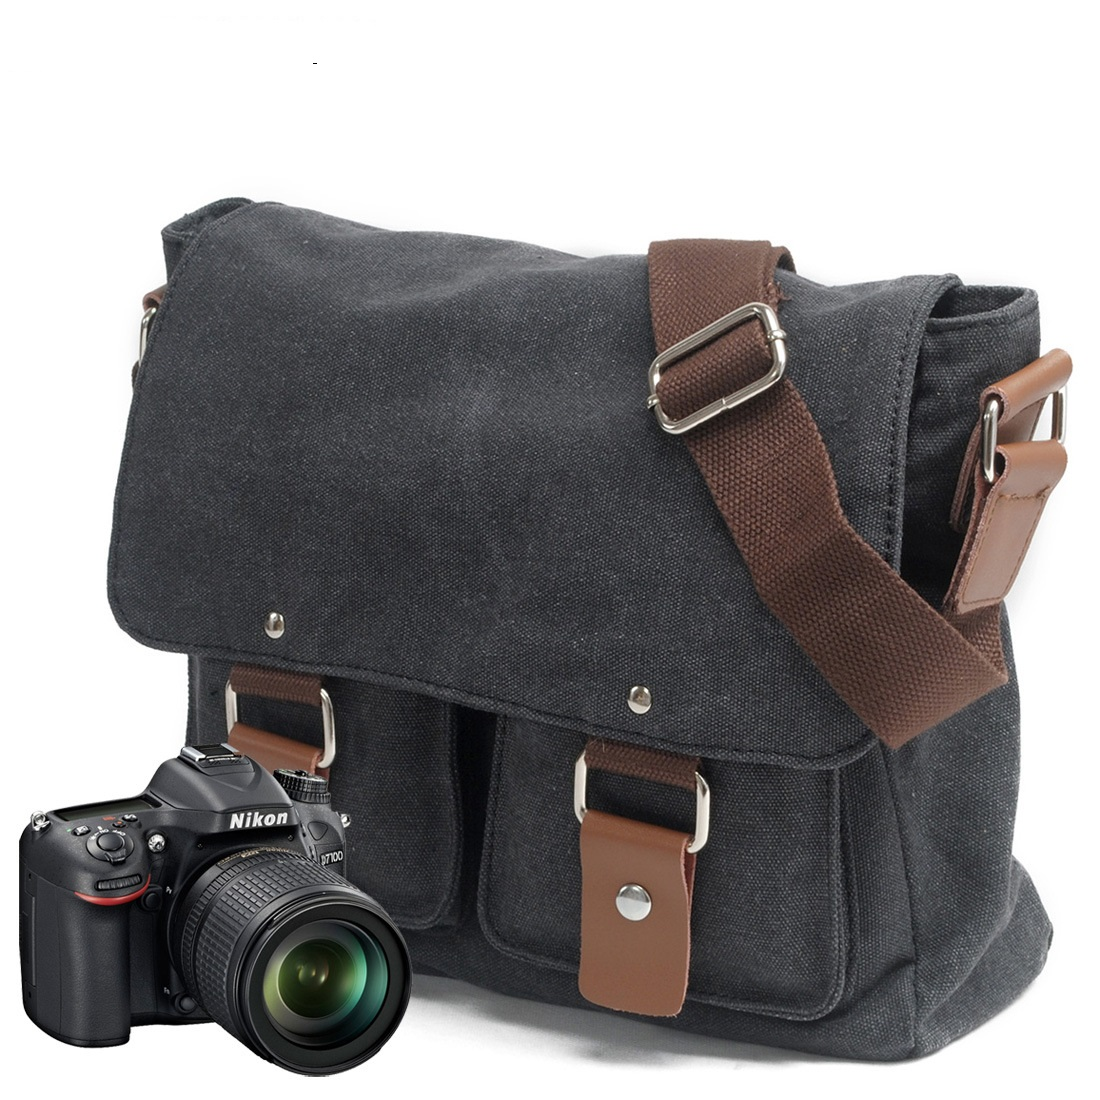 2101ND Wholesale European and American Style Canvas Bag Men and Women inclined Shoulder Camera Bag бензонсос на ваз 2101